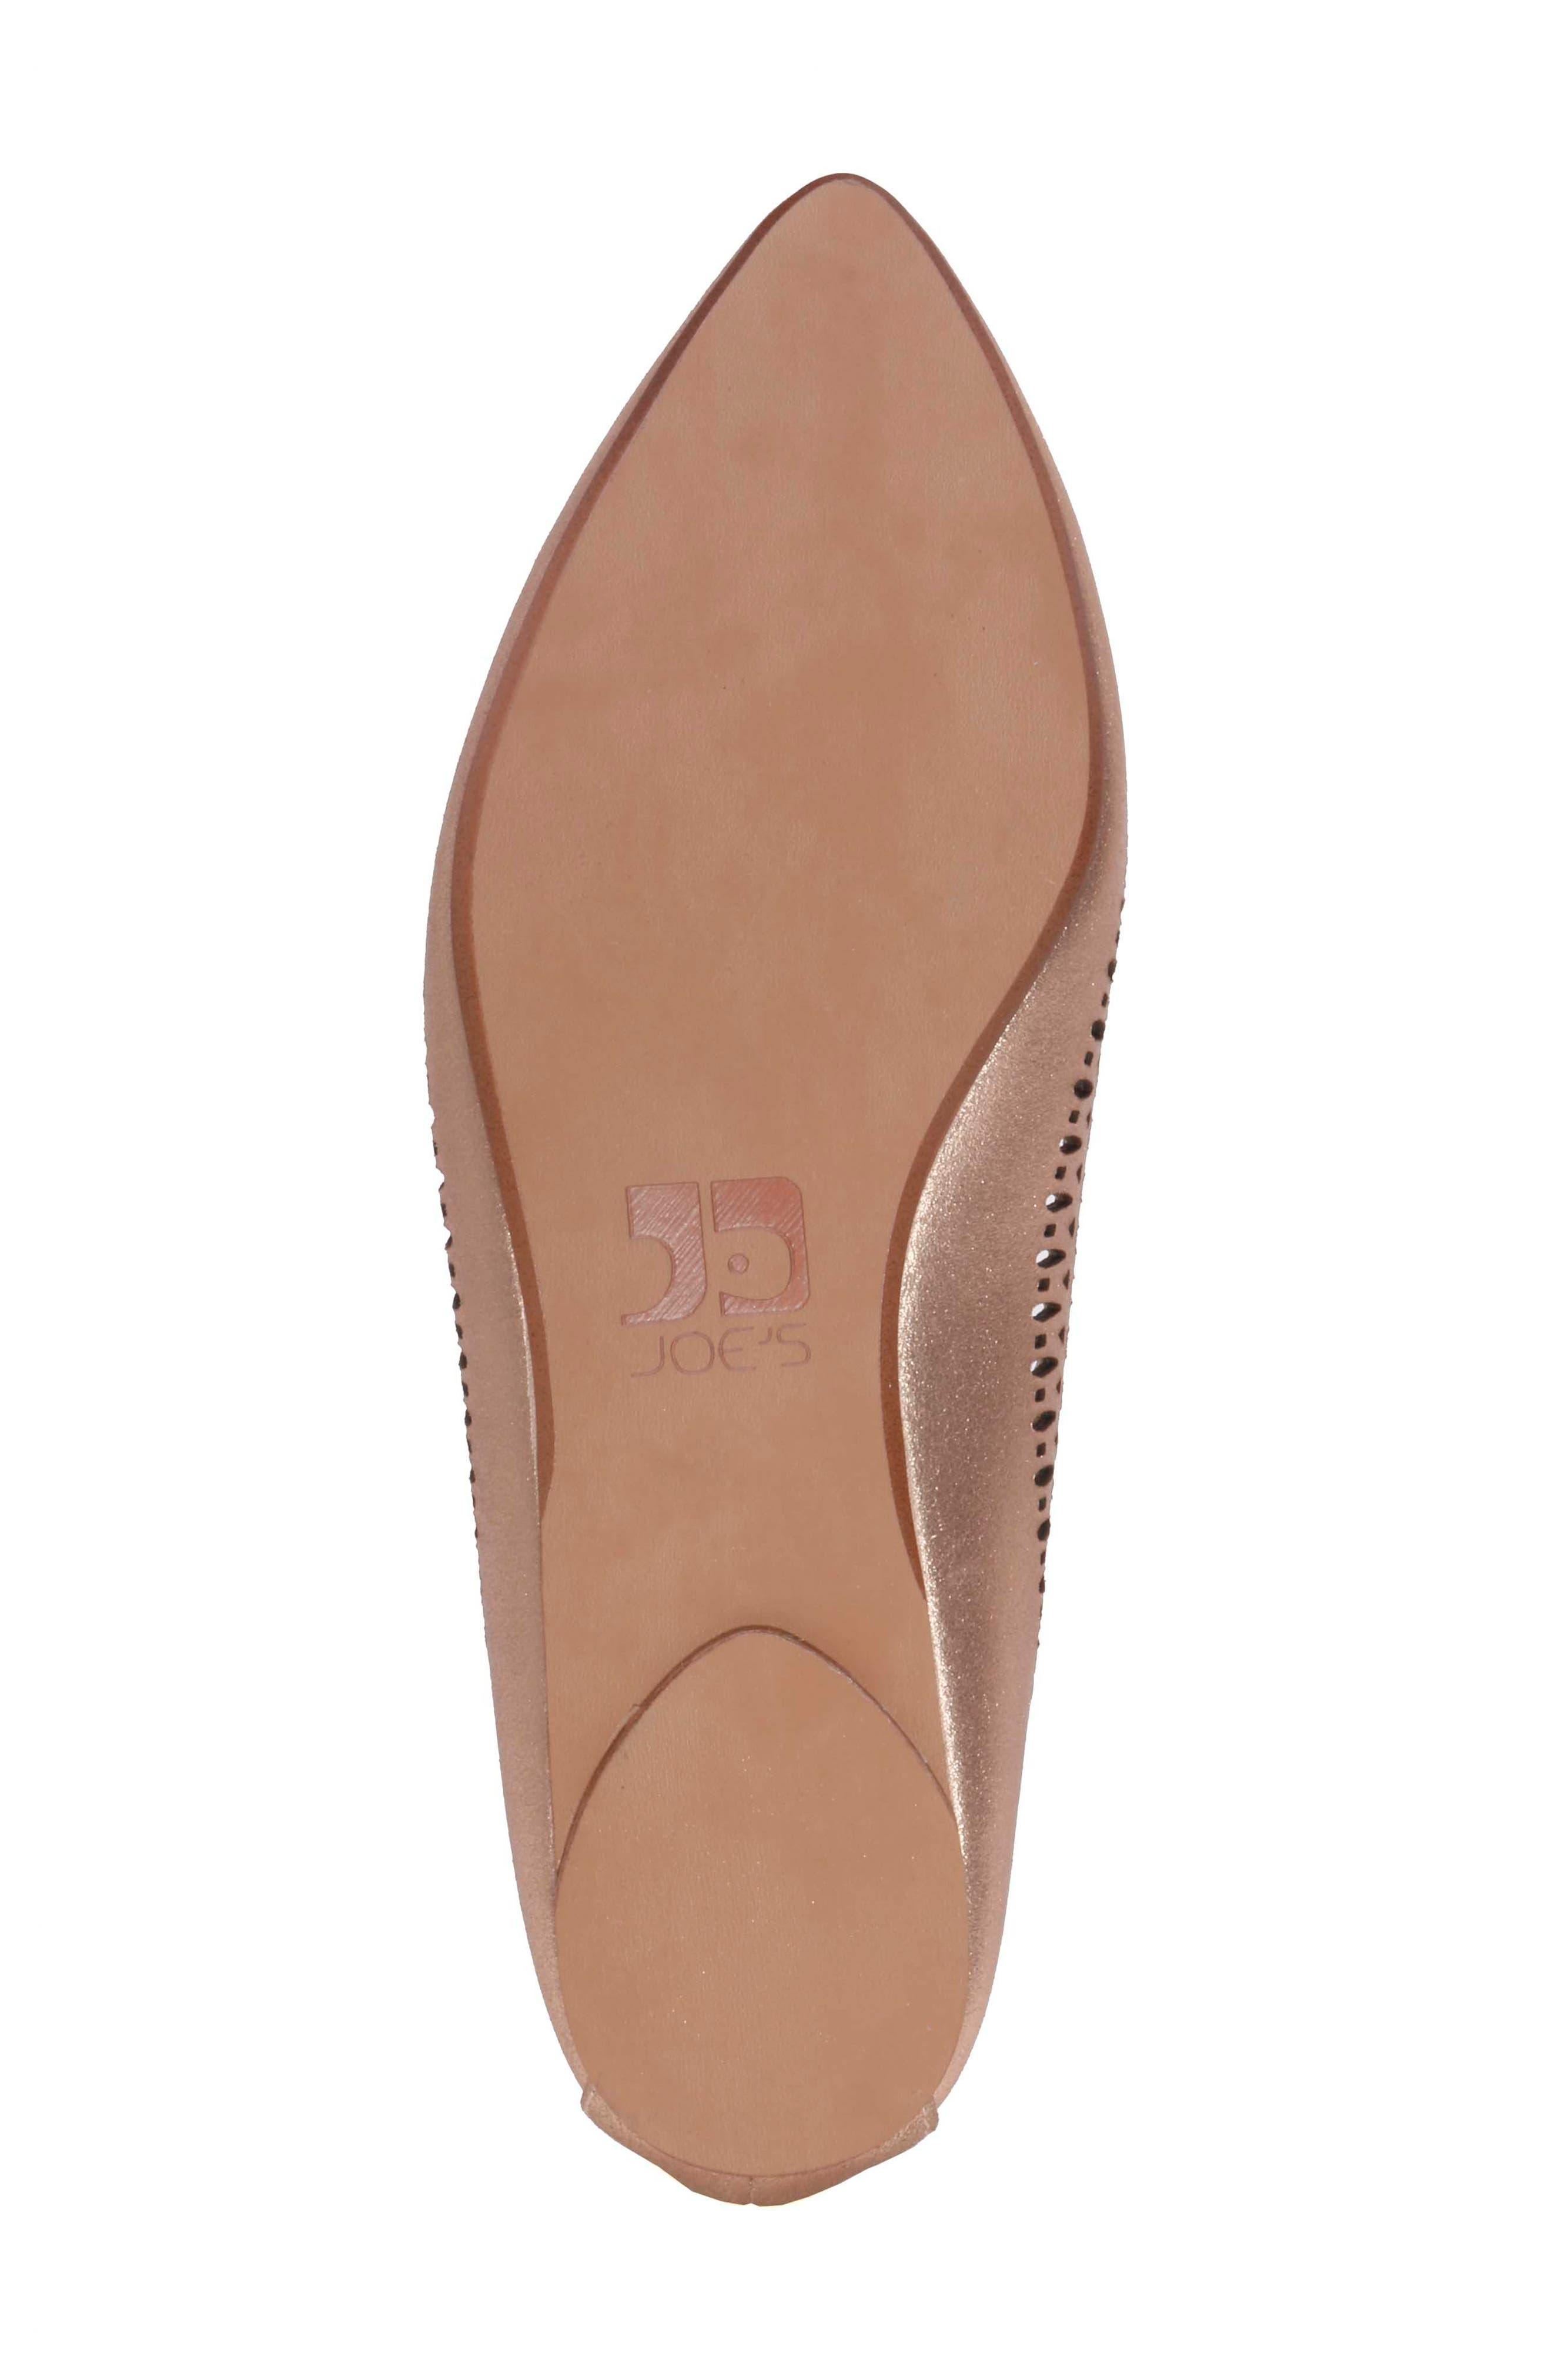 Cora Flat,                             Alternate thumbnail 5, color,                             Rose Gold Leather